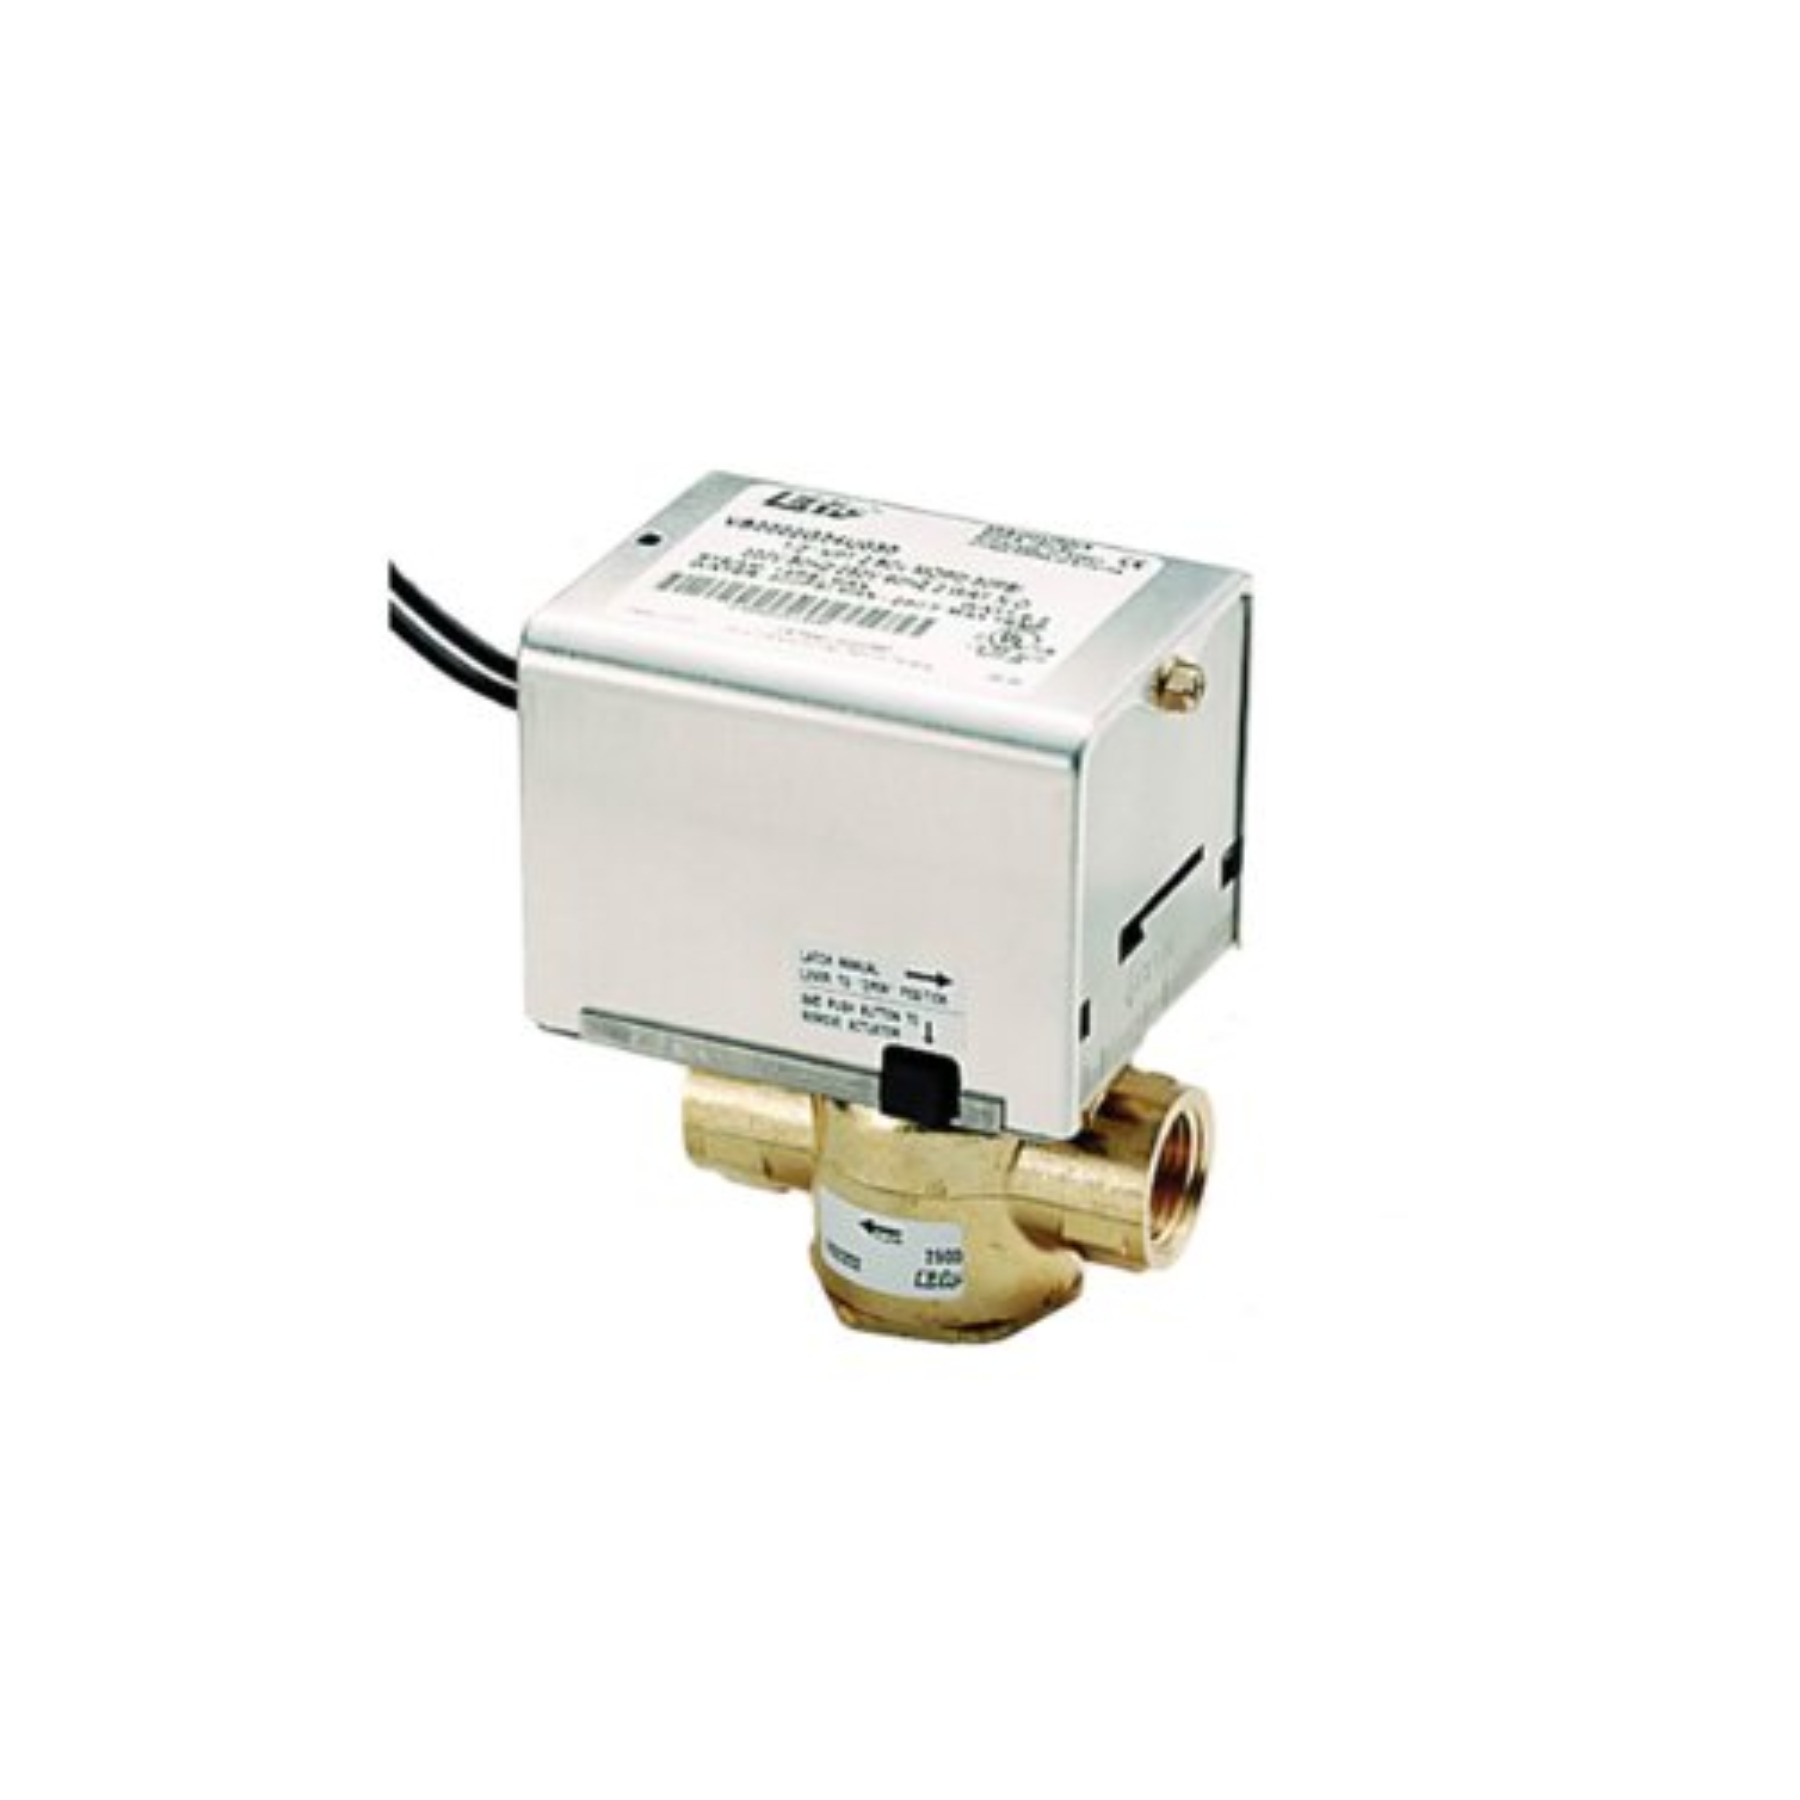 AUTO Drain - TSG Generator ONLY - 240 Volts